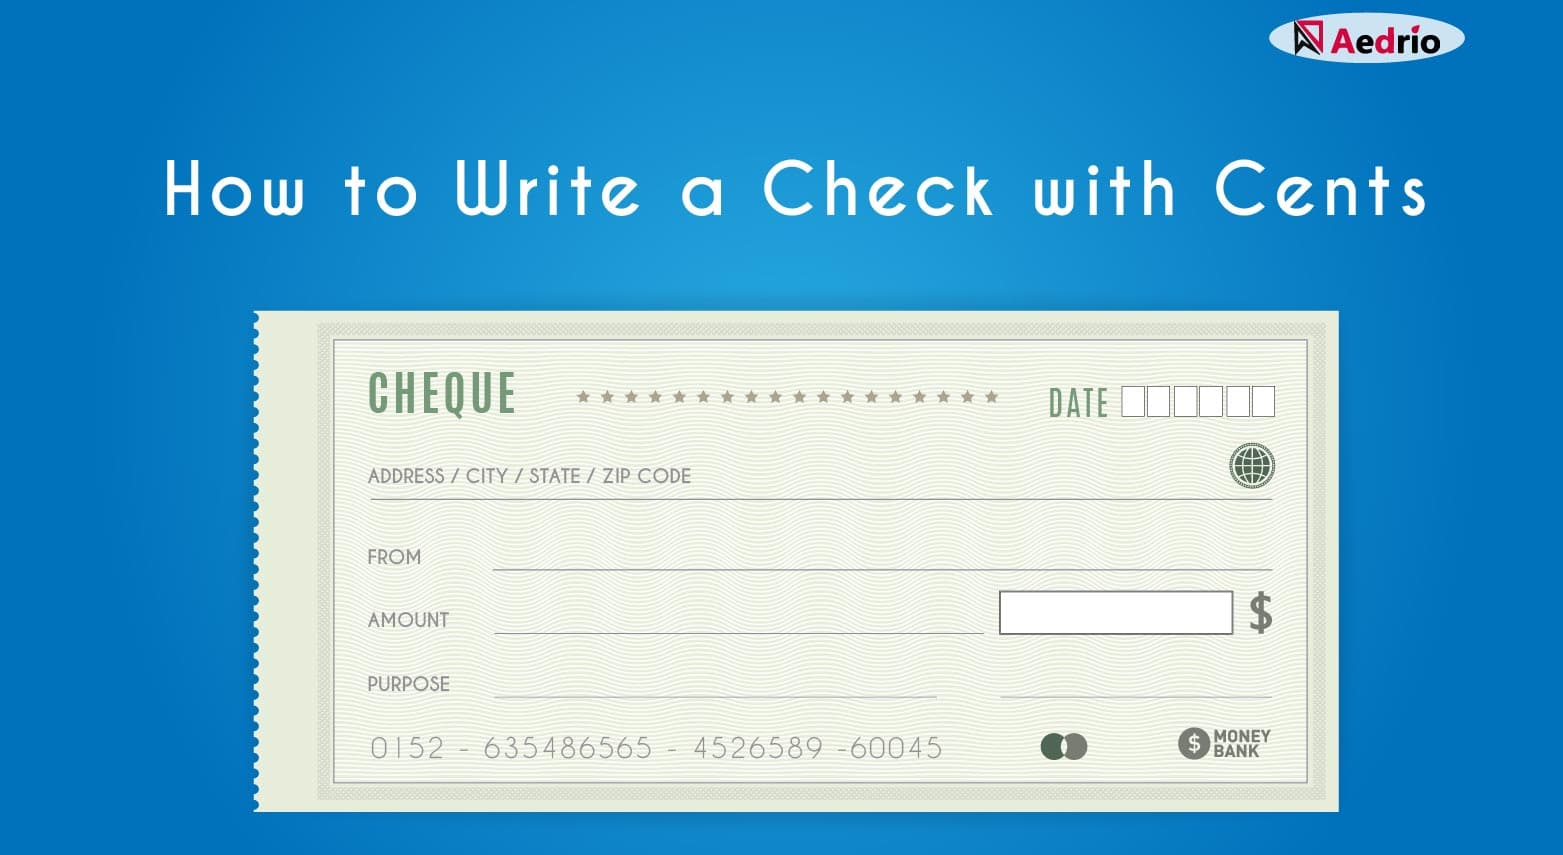 How To Write A Check With Cents – The Easy Way